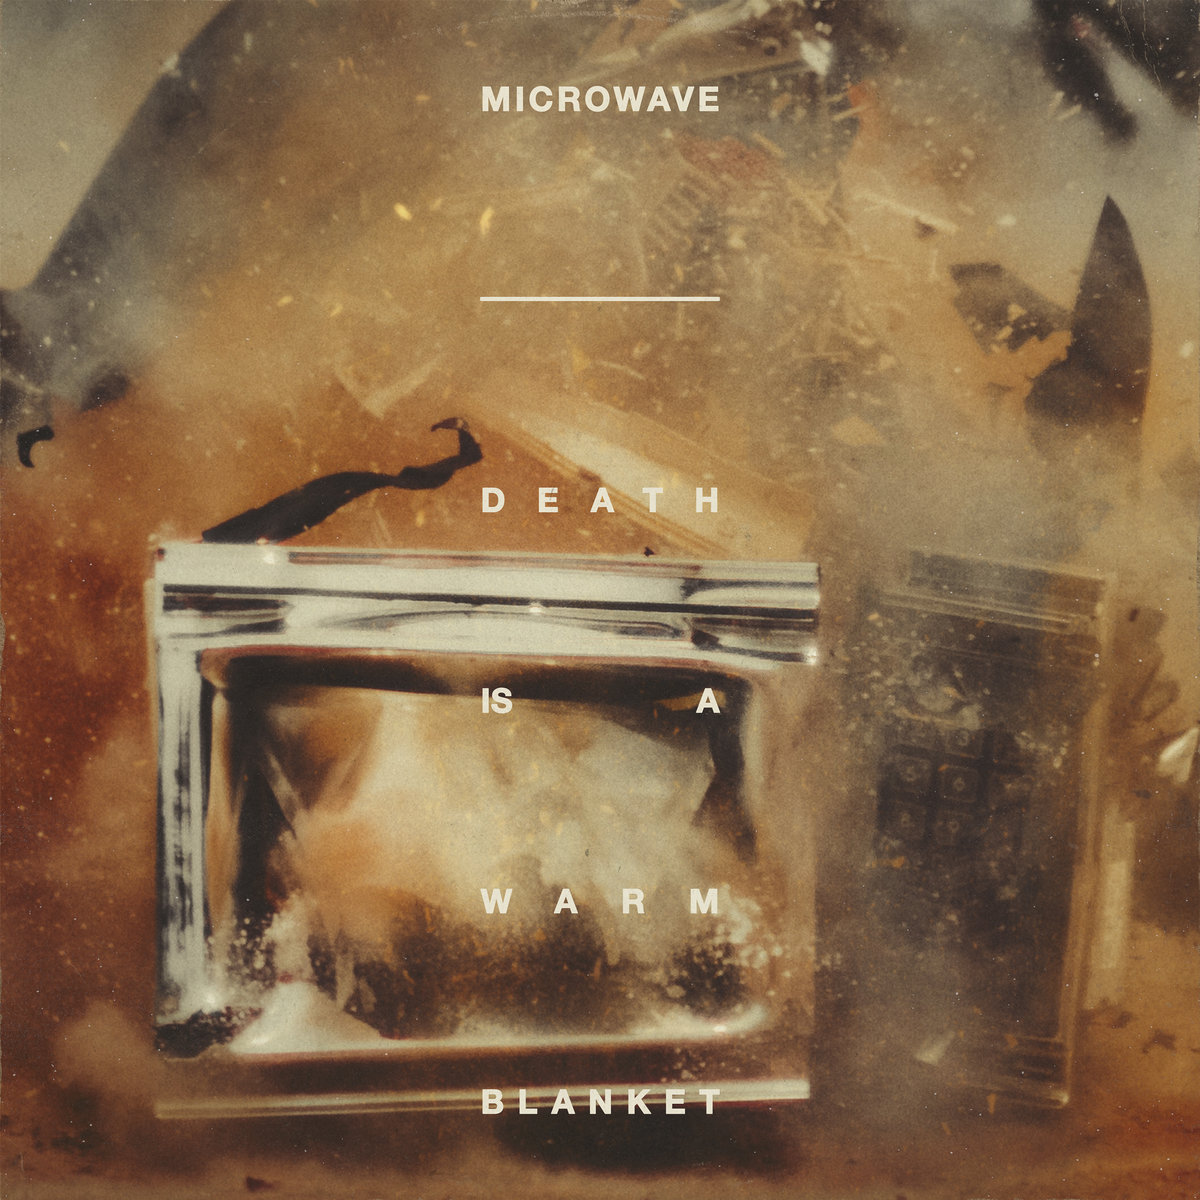 Microwave : Death is a Warm Blanket